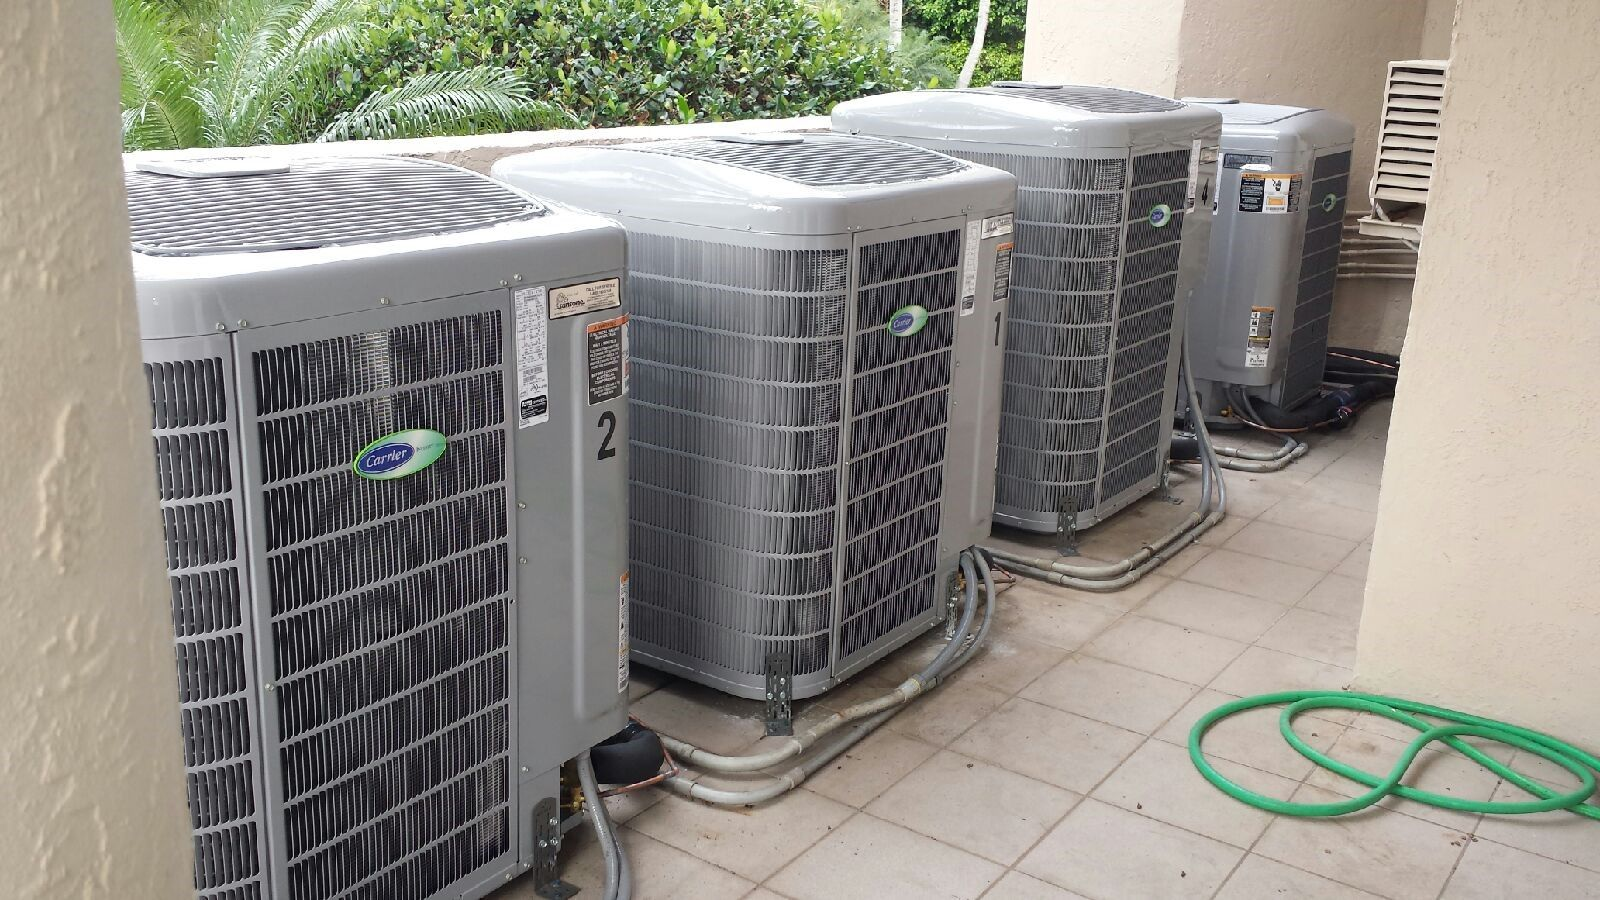 Sansone Air Conditioning sansoneac on Pinterest